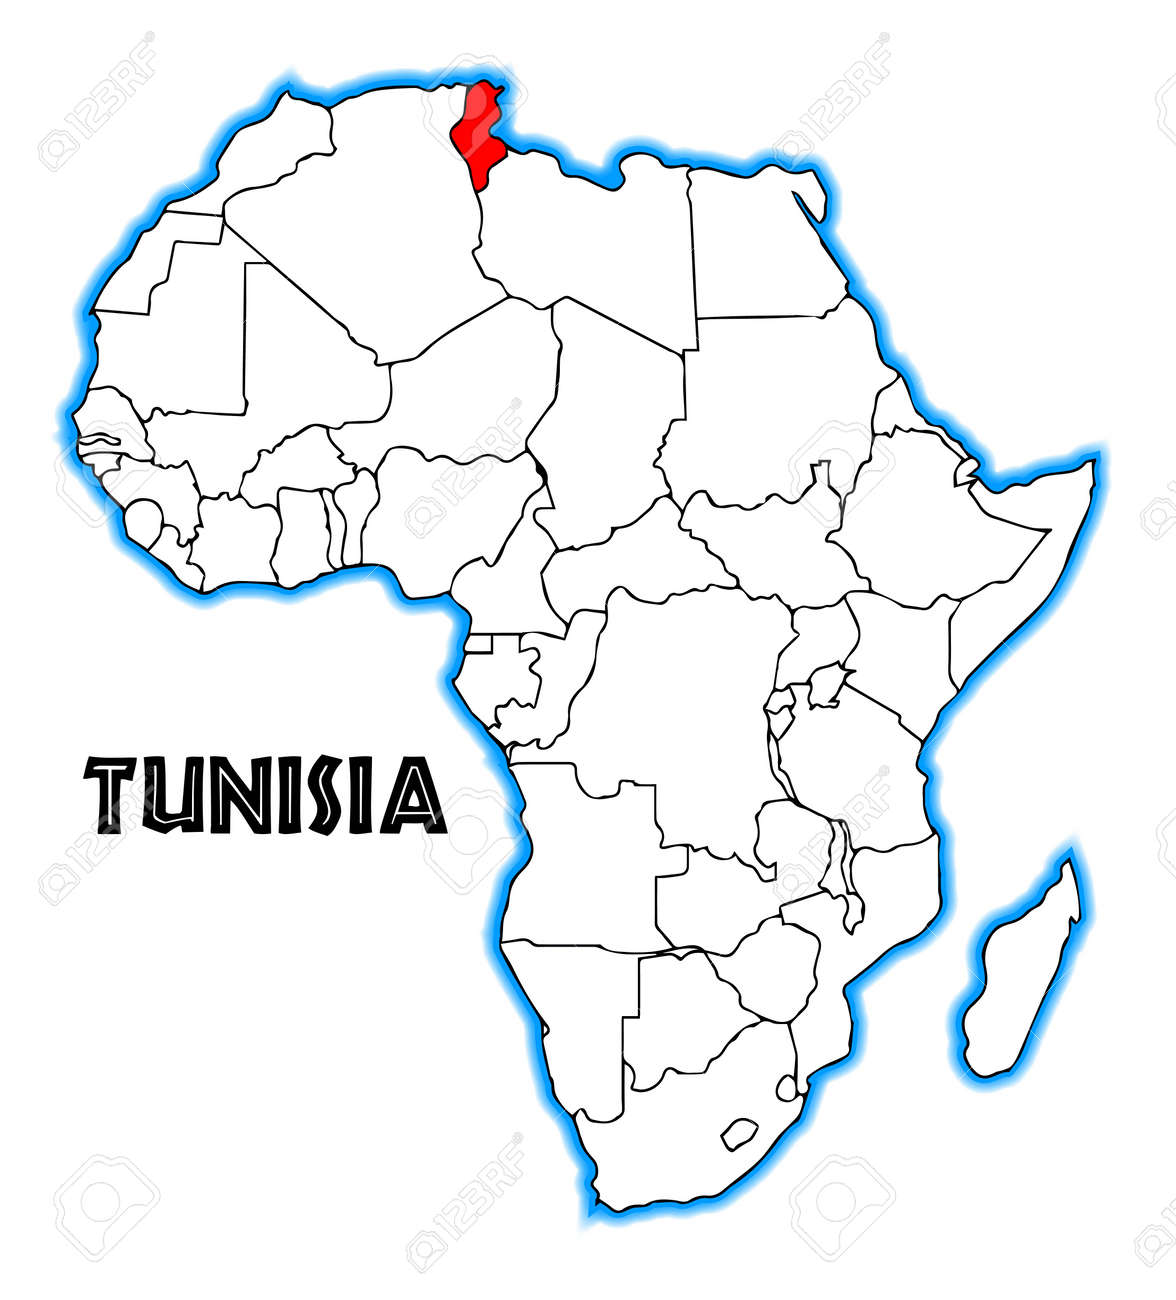 Tunisia Outline Inset Into A Map Of Africa Over A White Background - Tunisia map africa